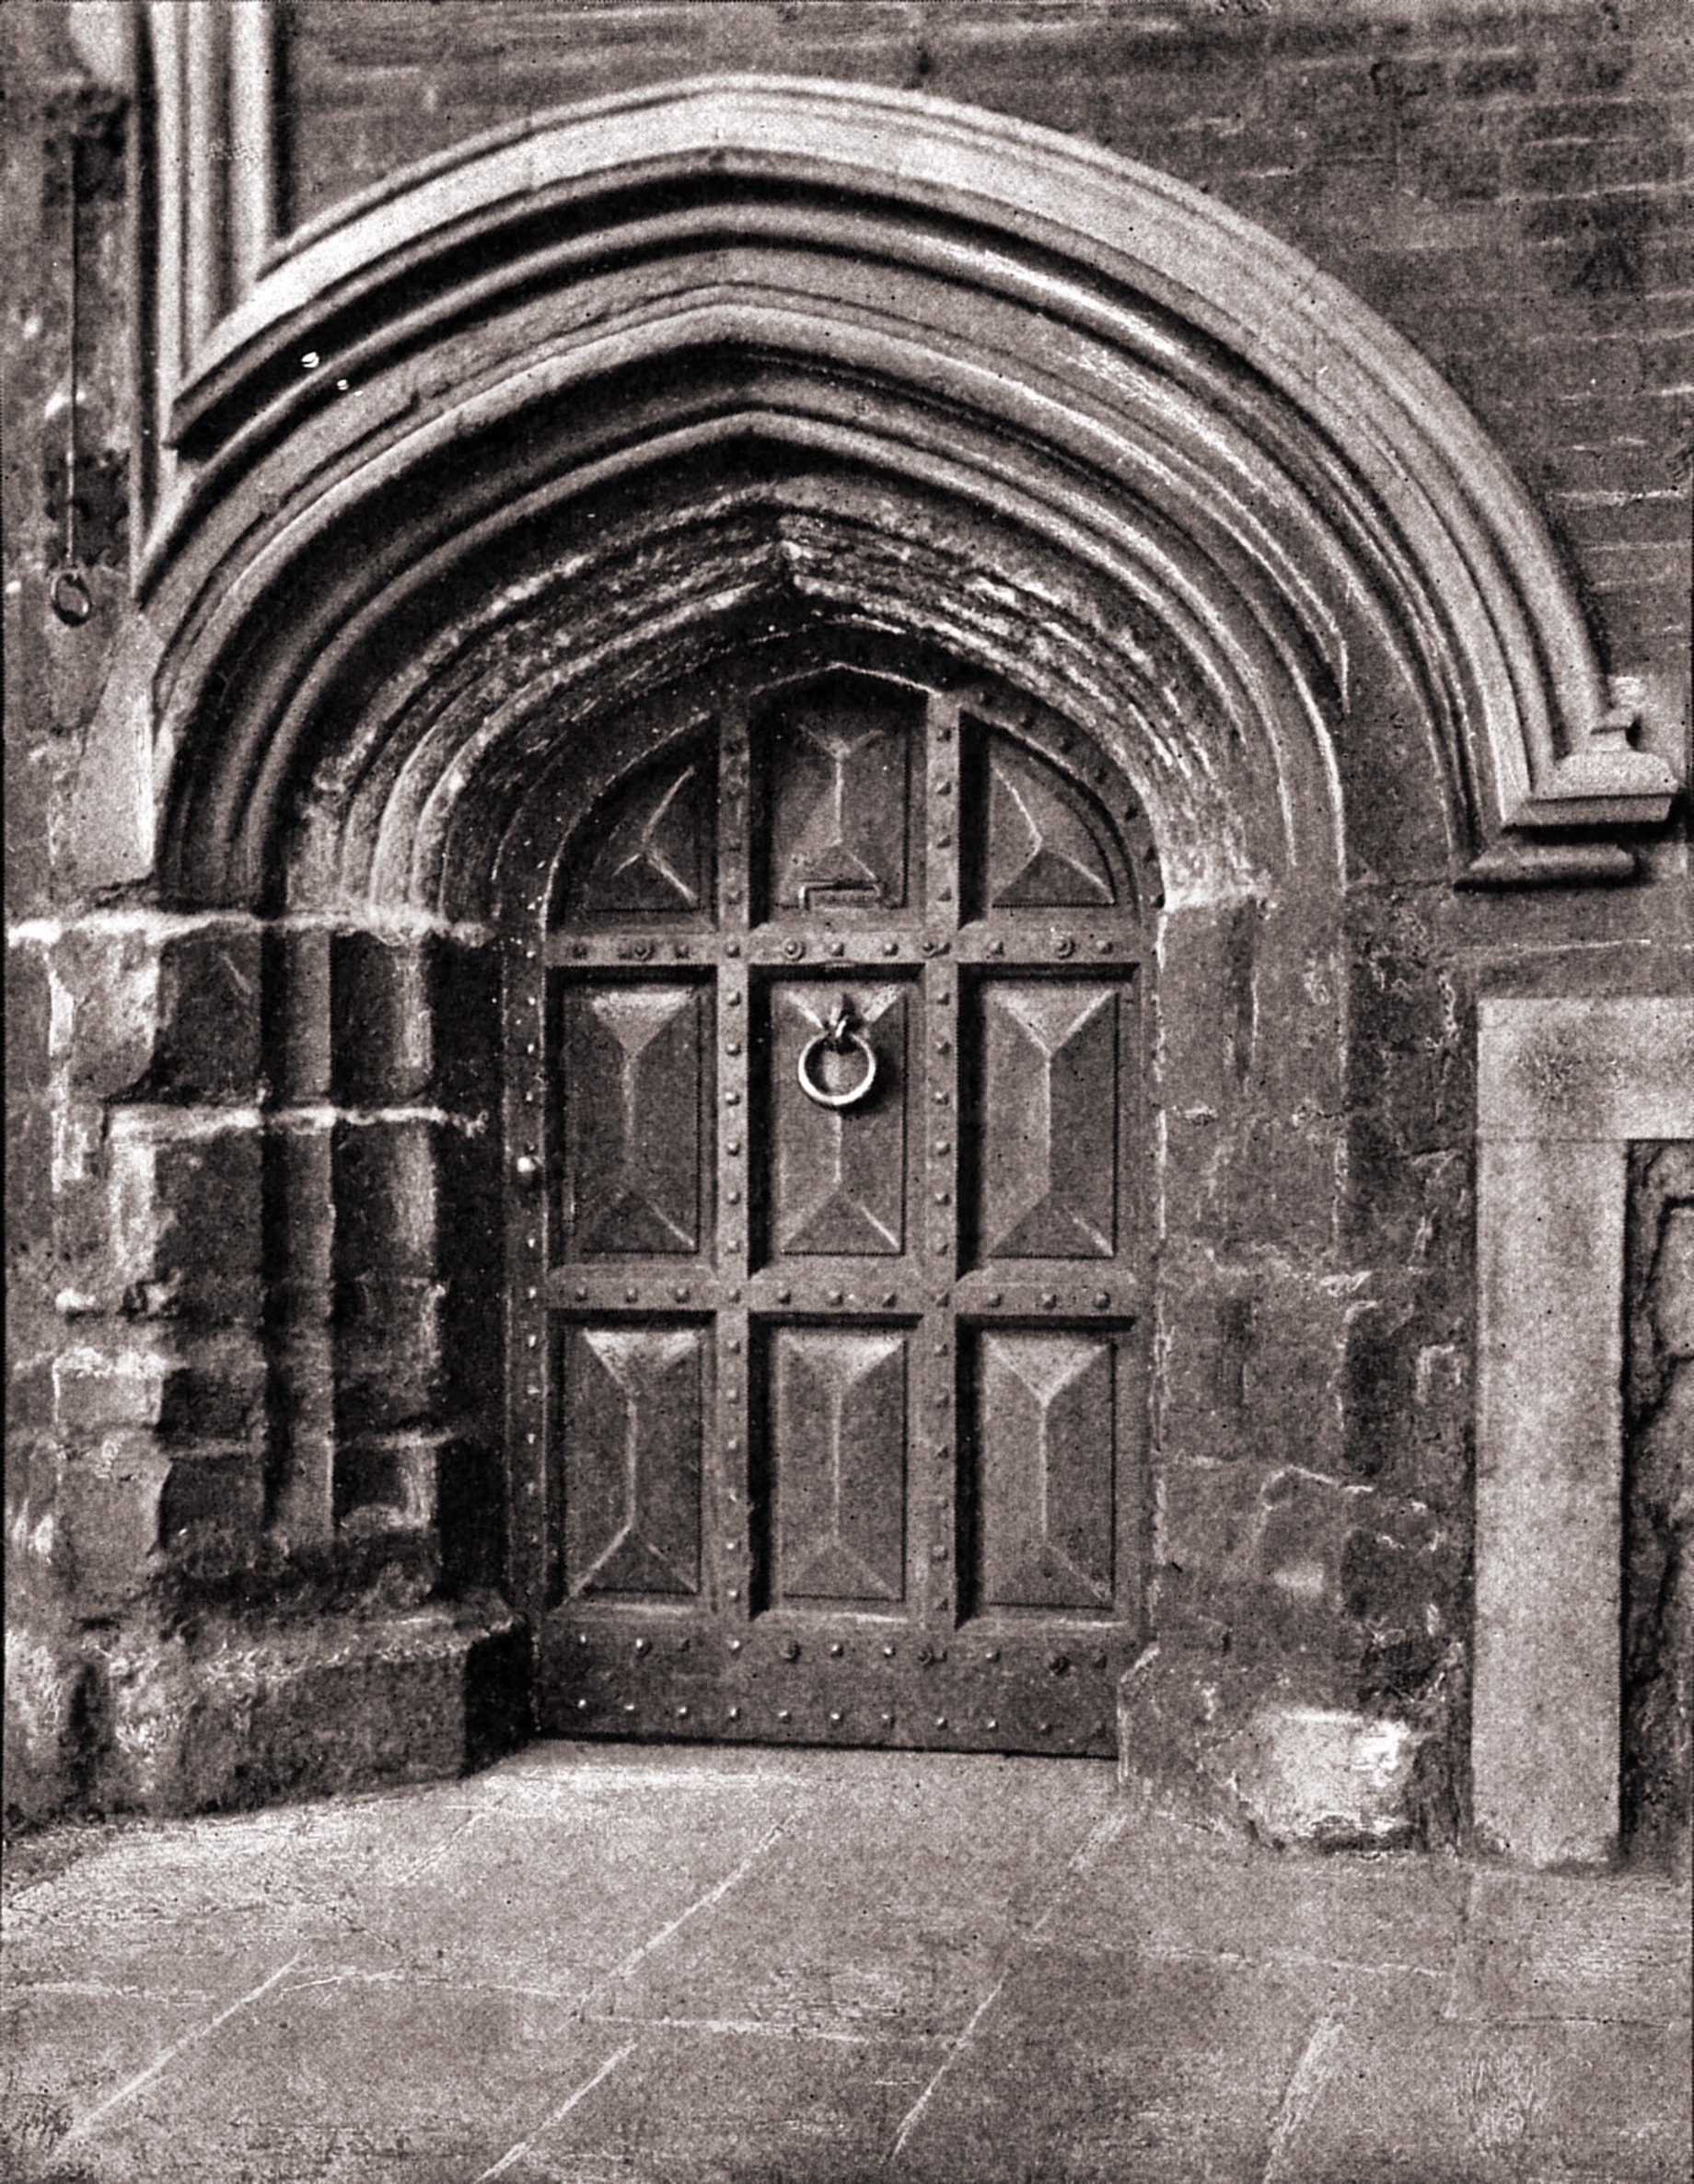 Postern door, Lambeth Palace, London by A. Lockett about 1923